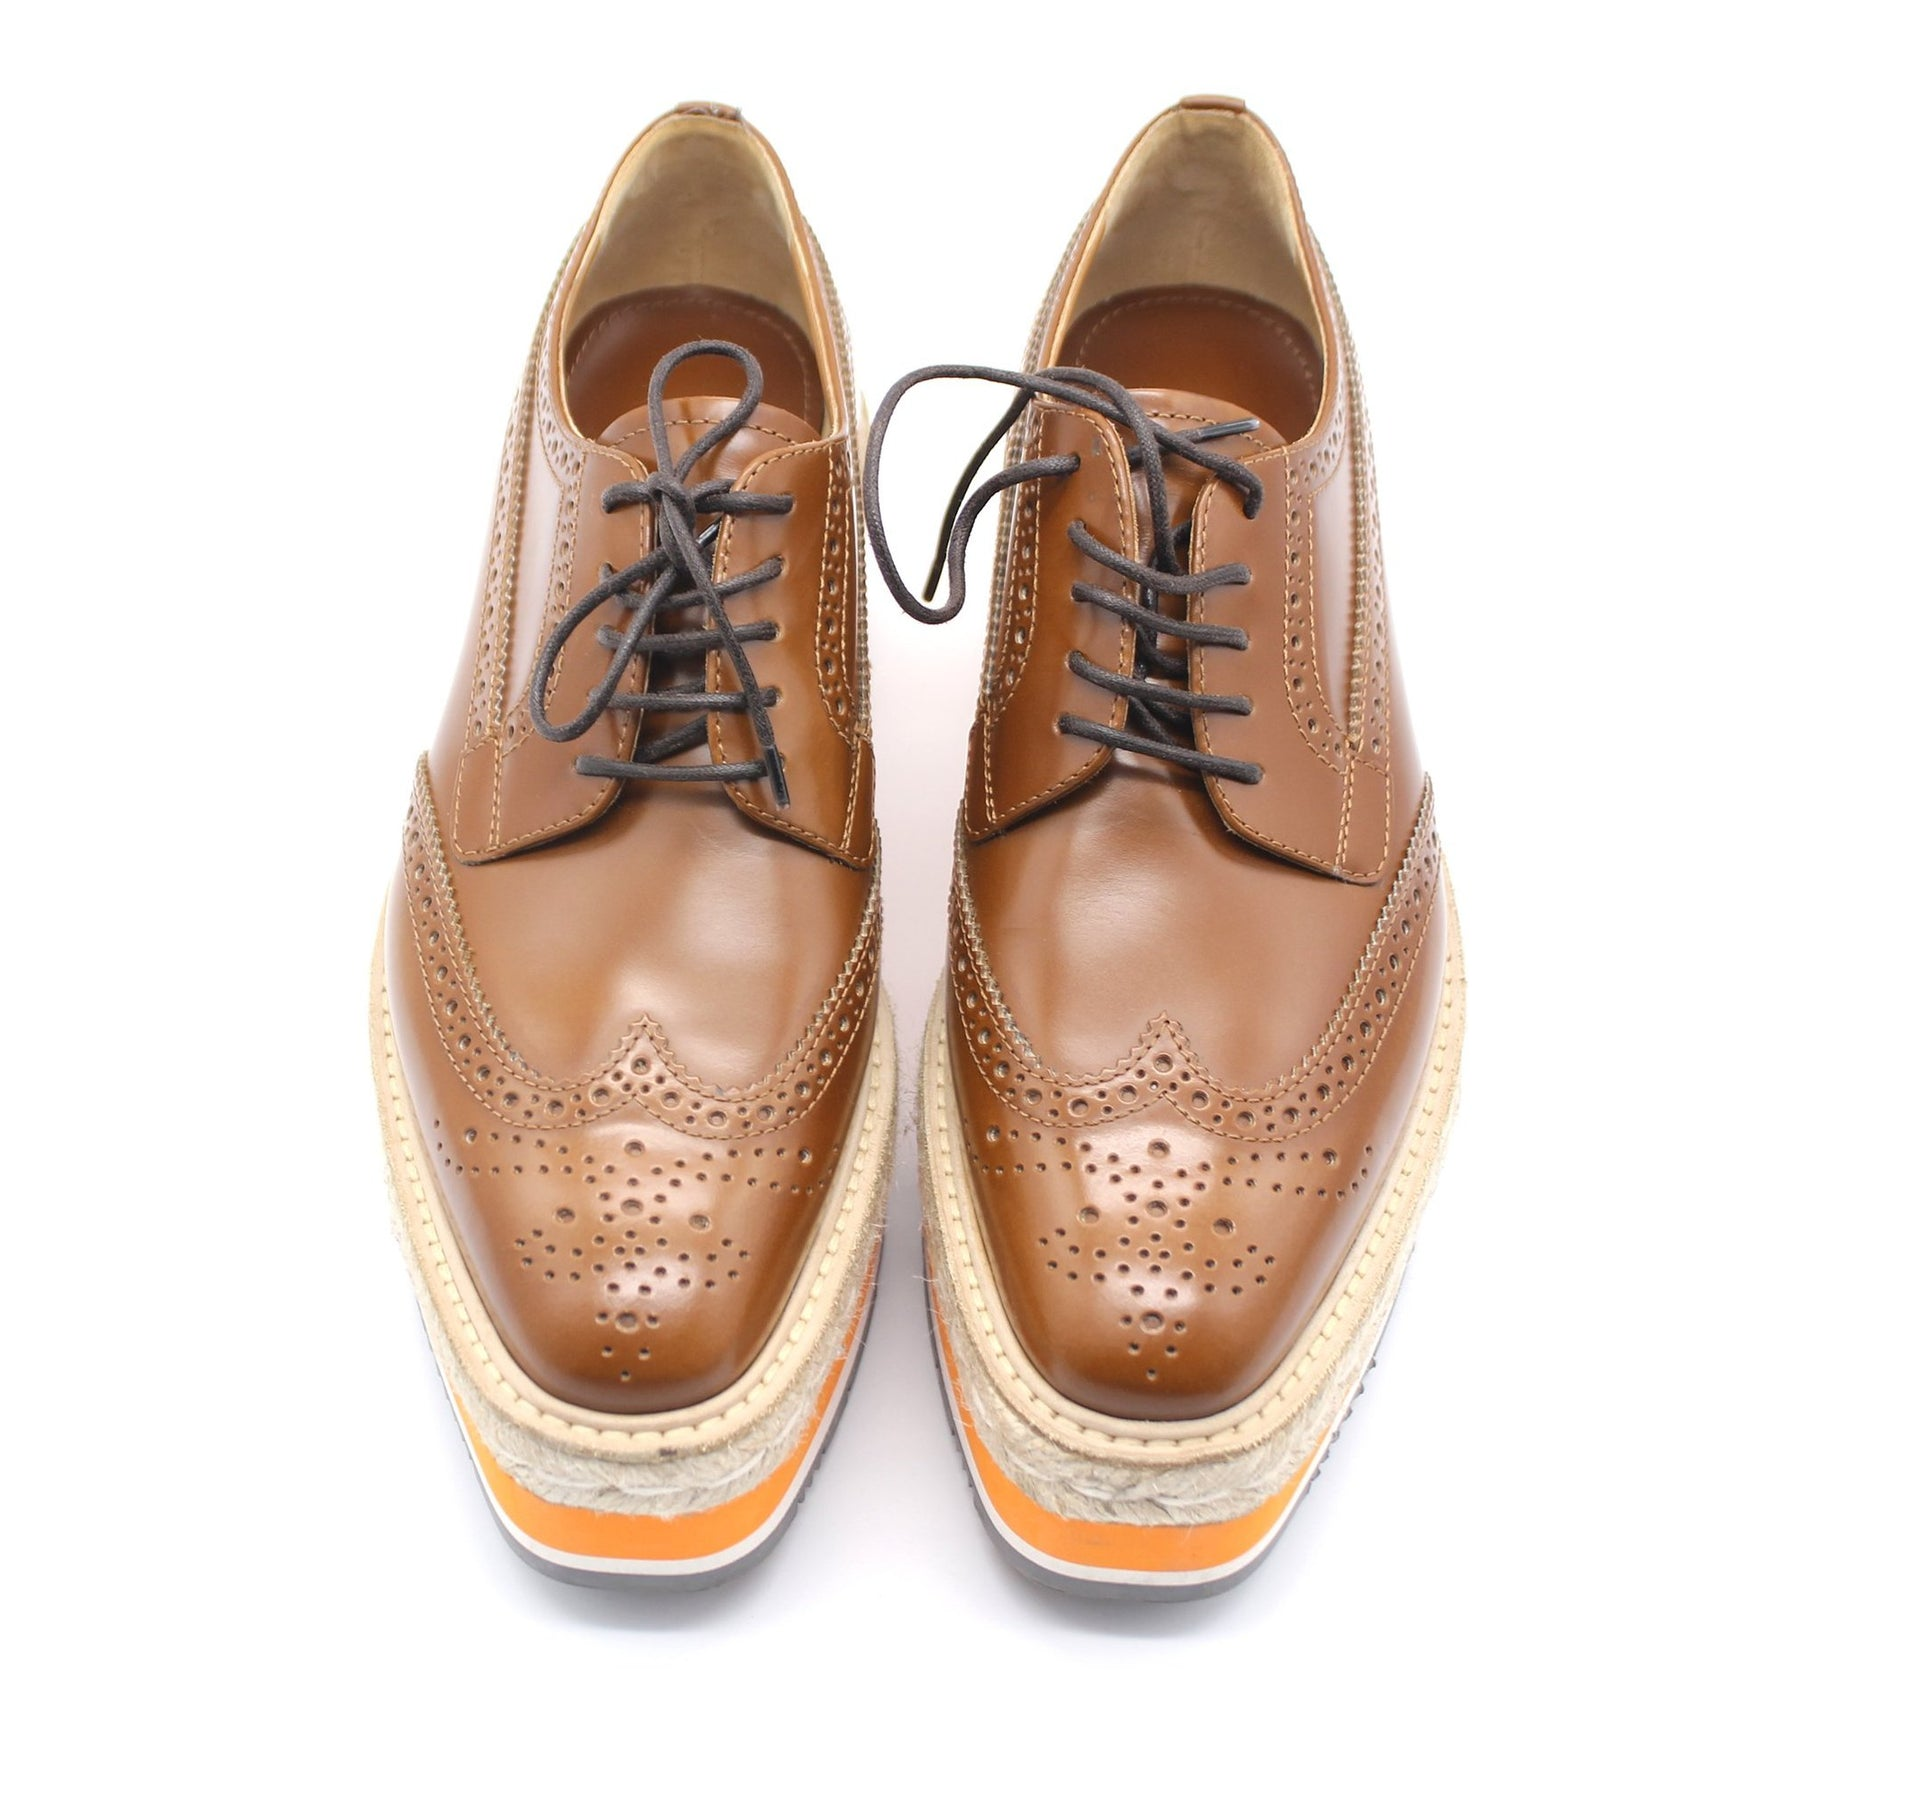 Prada Leather Lace-Up Derby Shoe